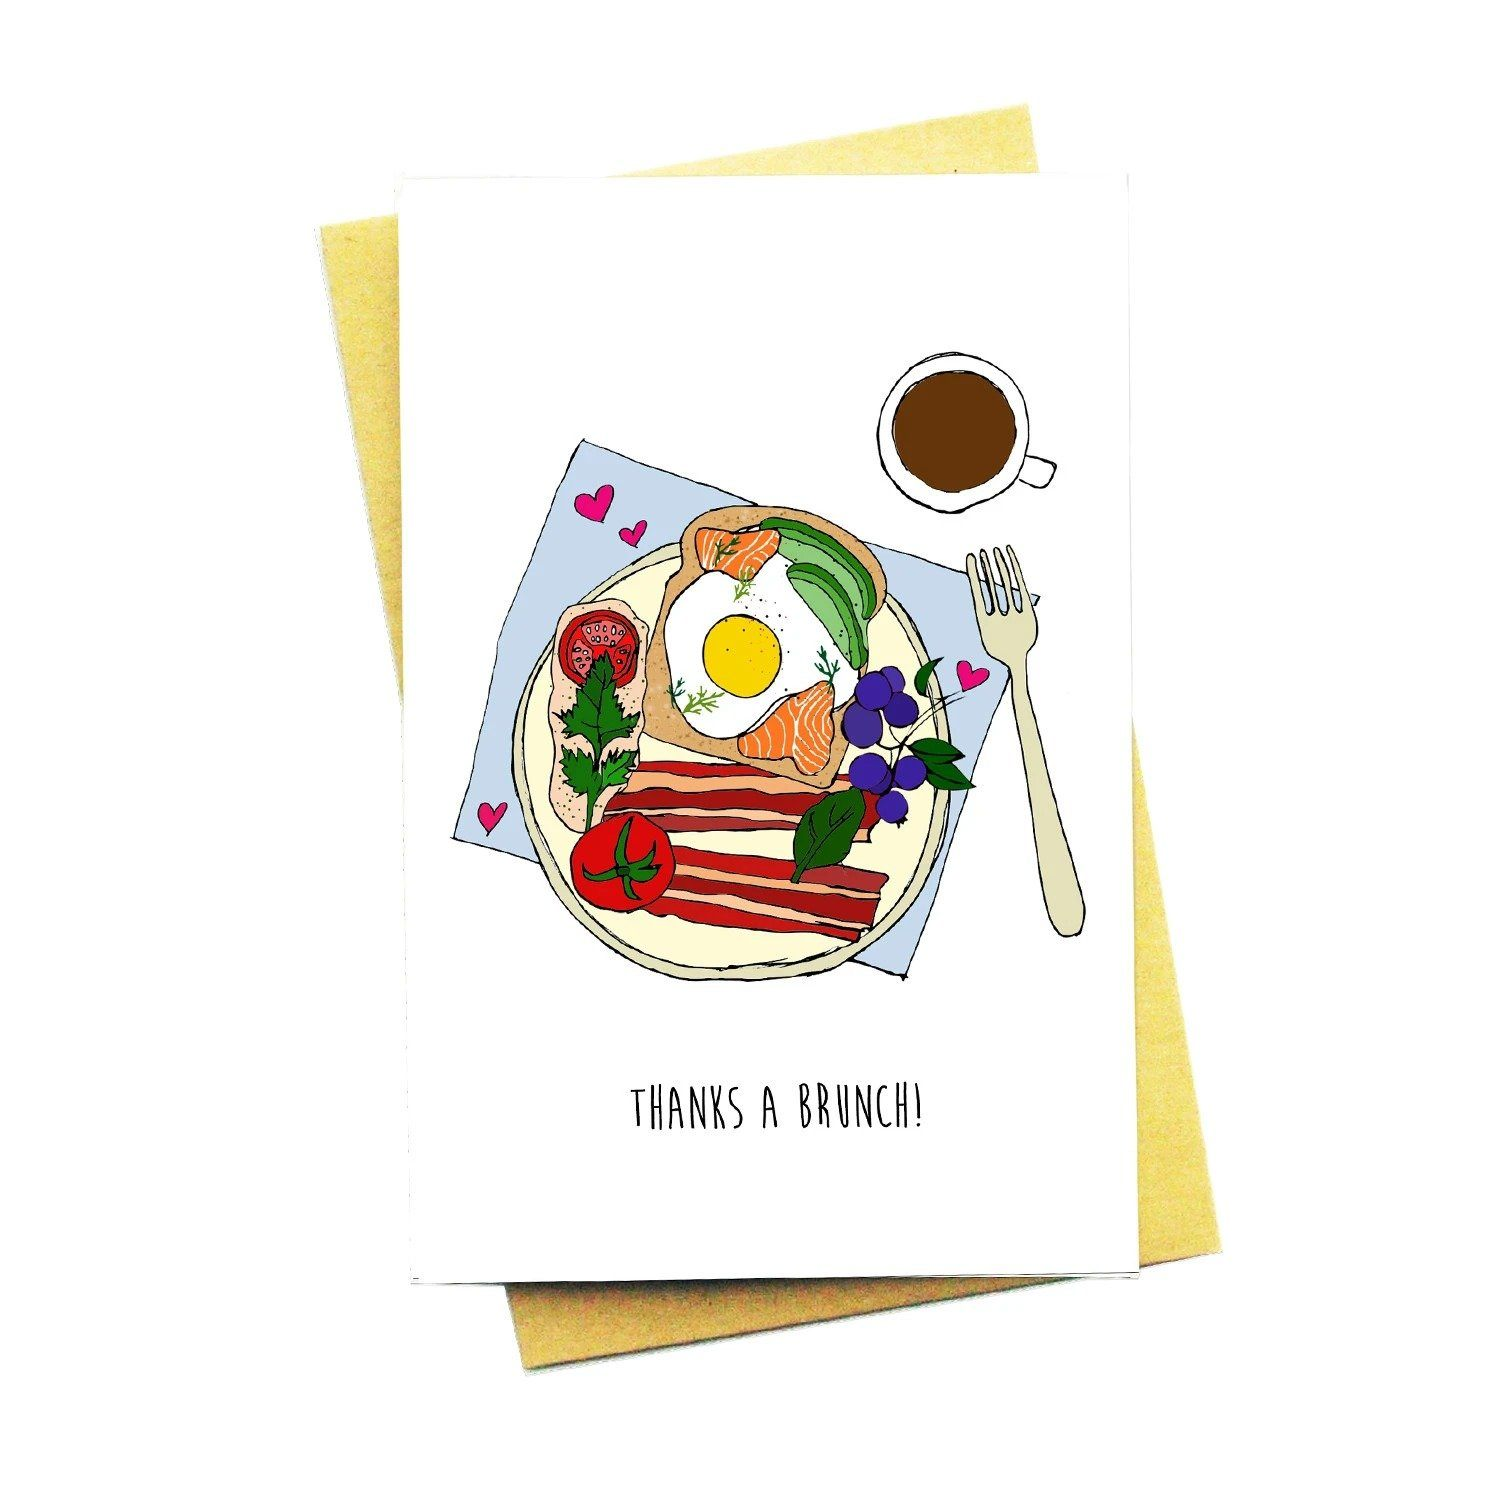 Thanks A Brunch! Greeting Card - Thank You Cards - Nocturnal Paper - Naiise